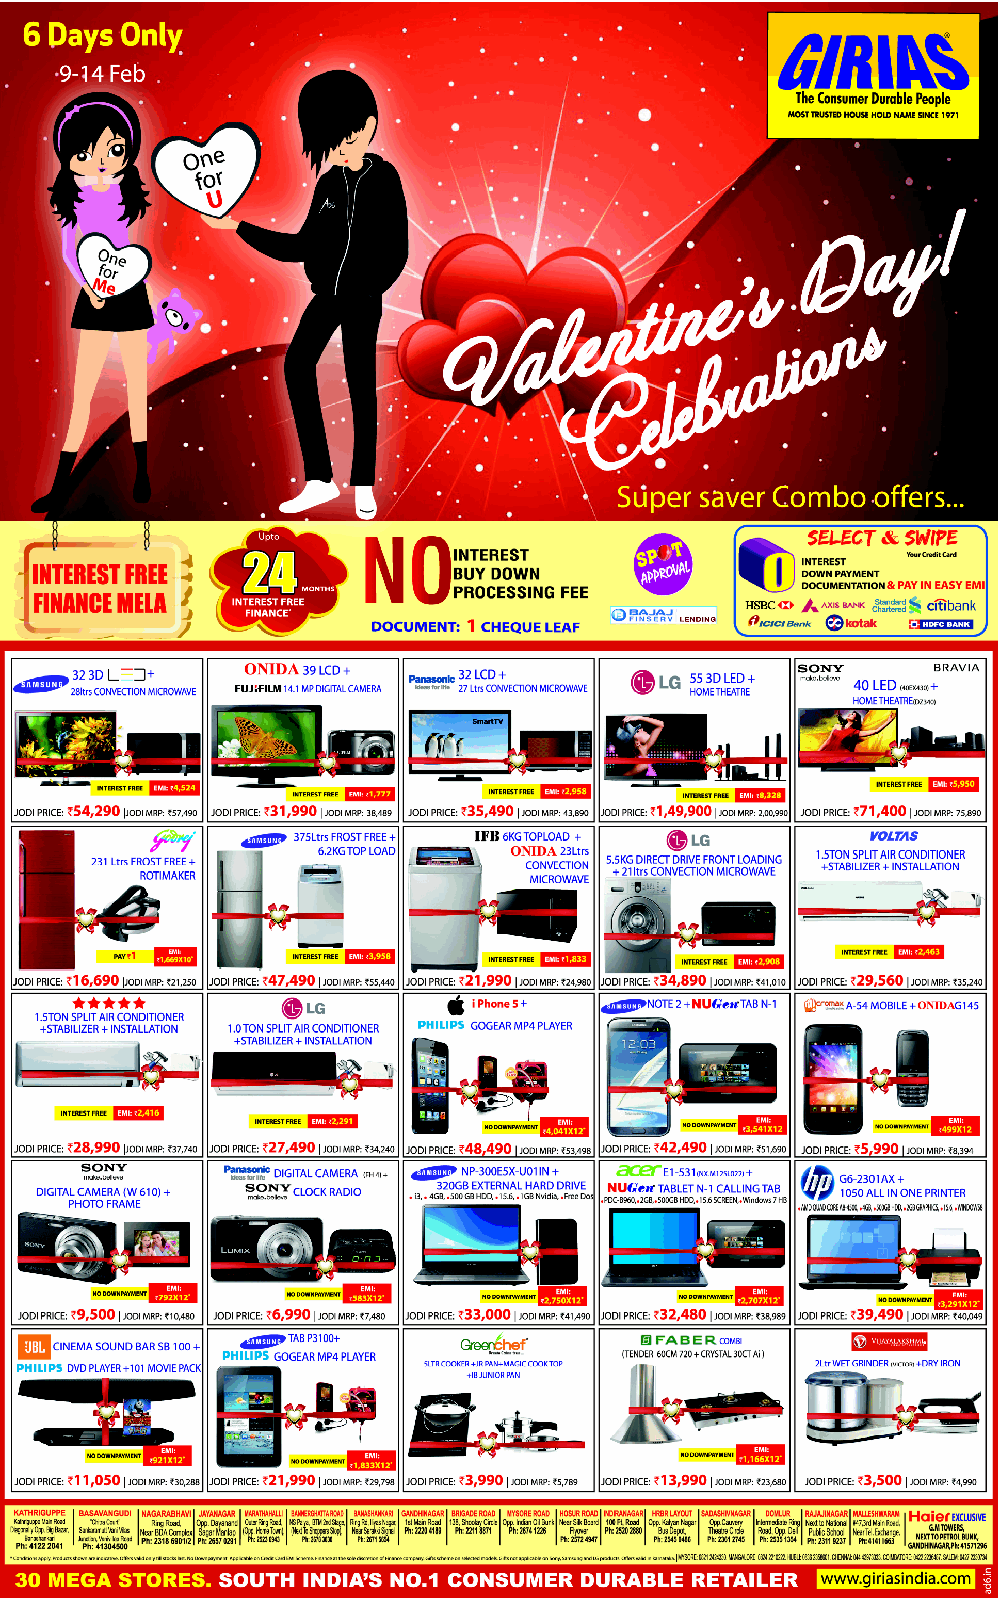 Girias - Valentine Day Celebrations